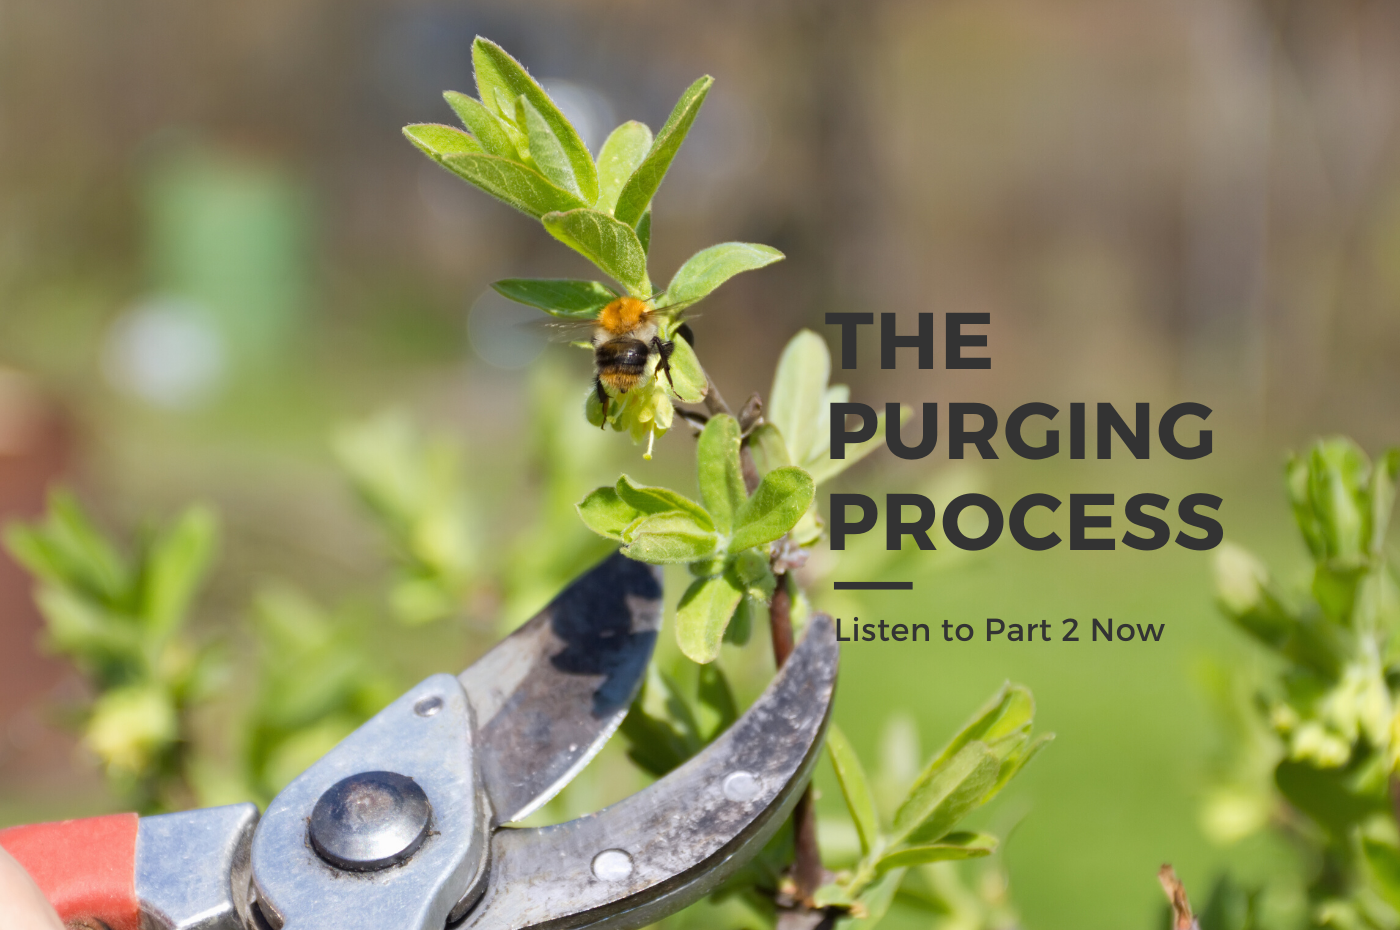 The Purging Process